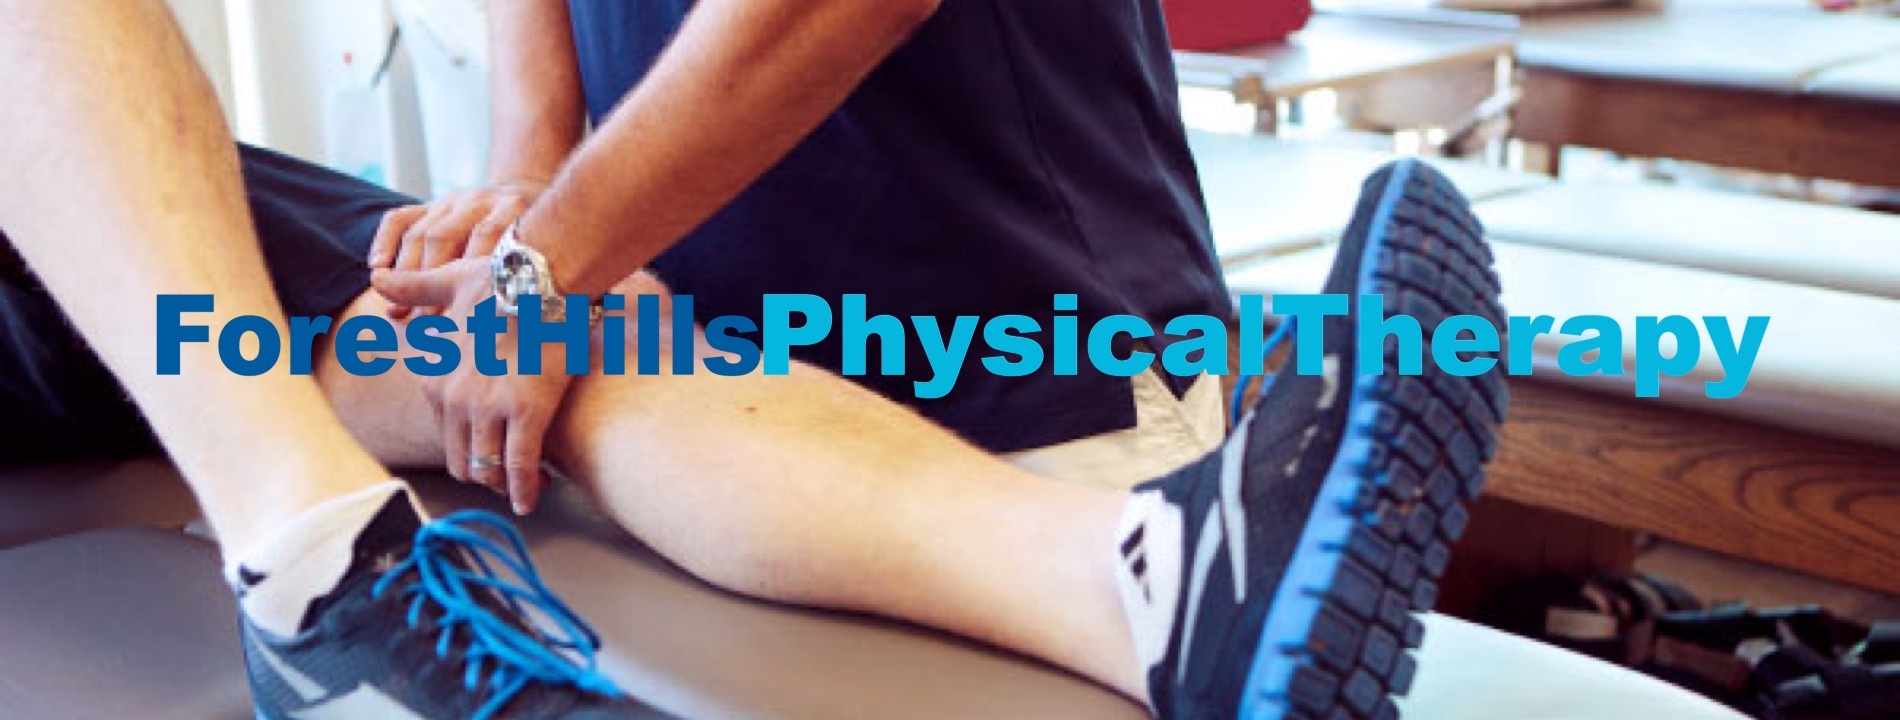 physical therapy forest hills, forest hills physical therapist